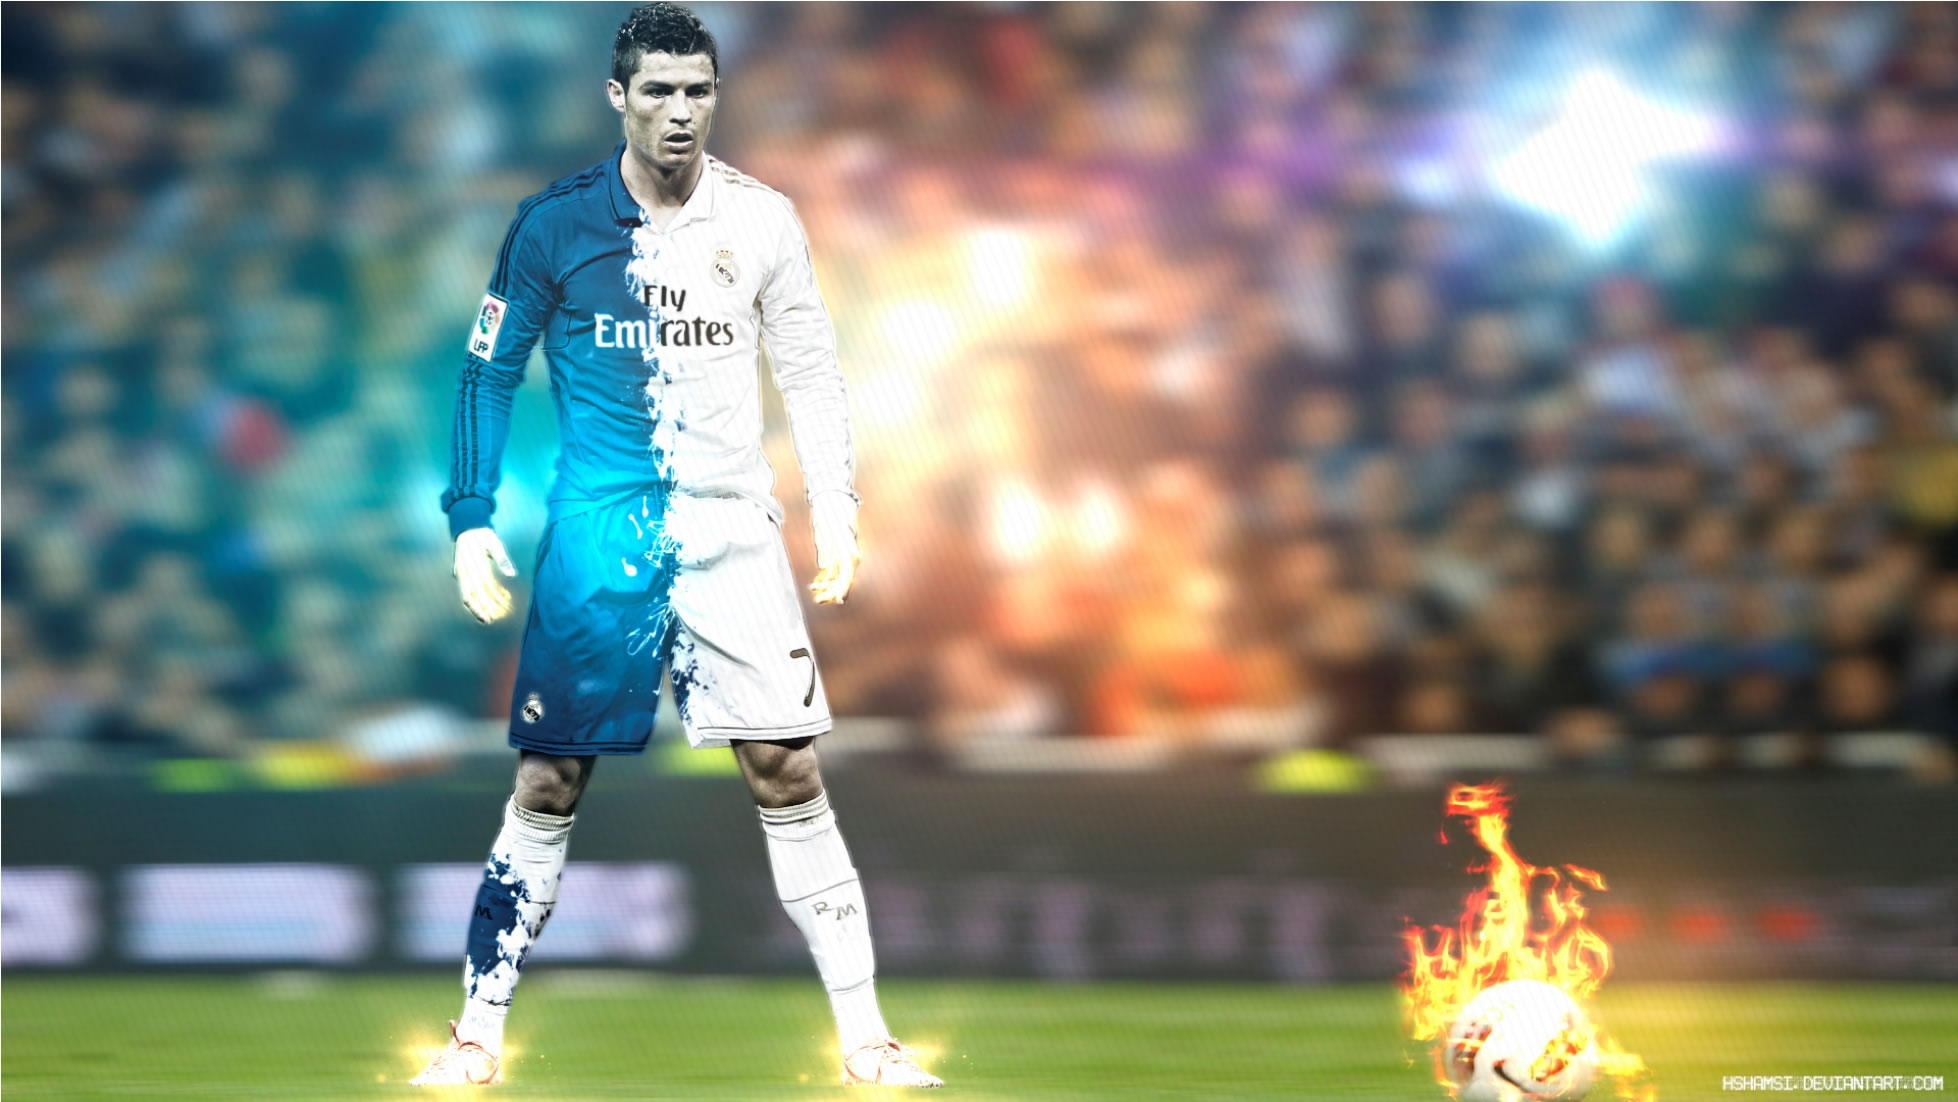 Cristiano Wallpaper Iphone 5